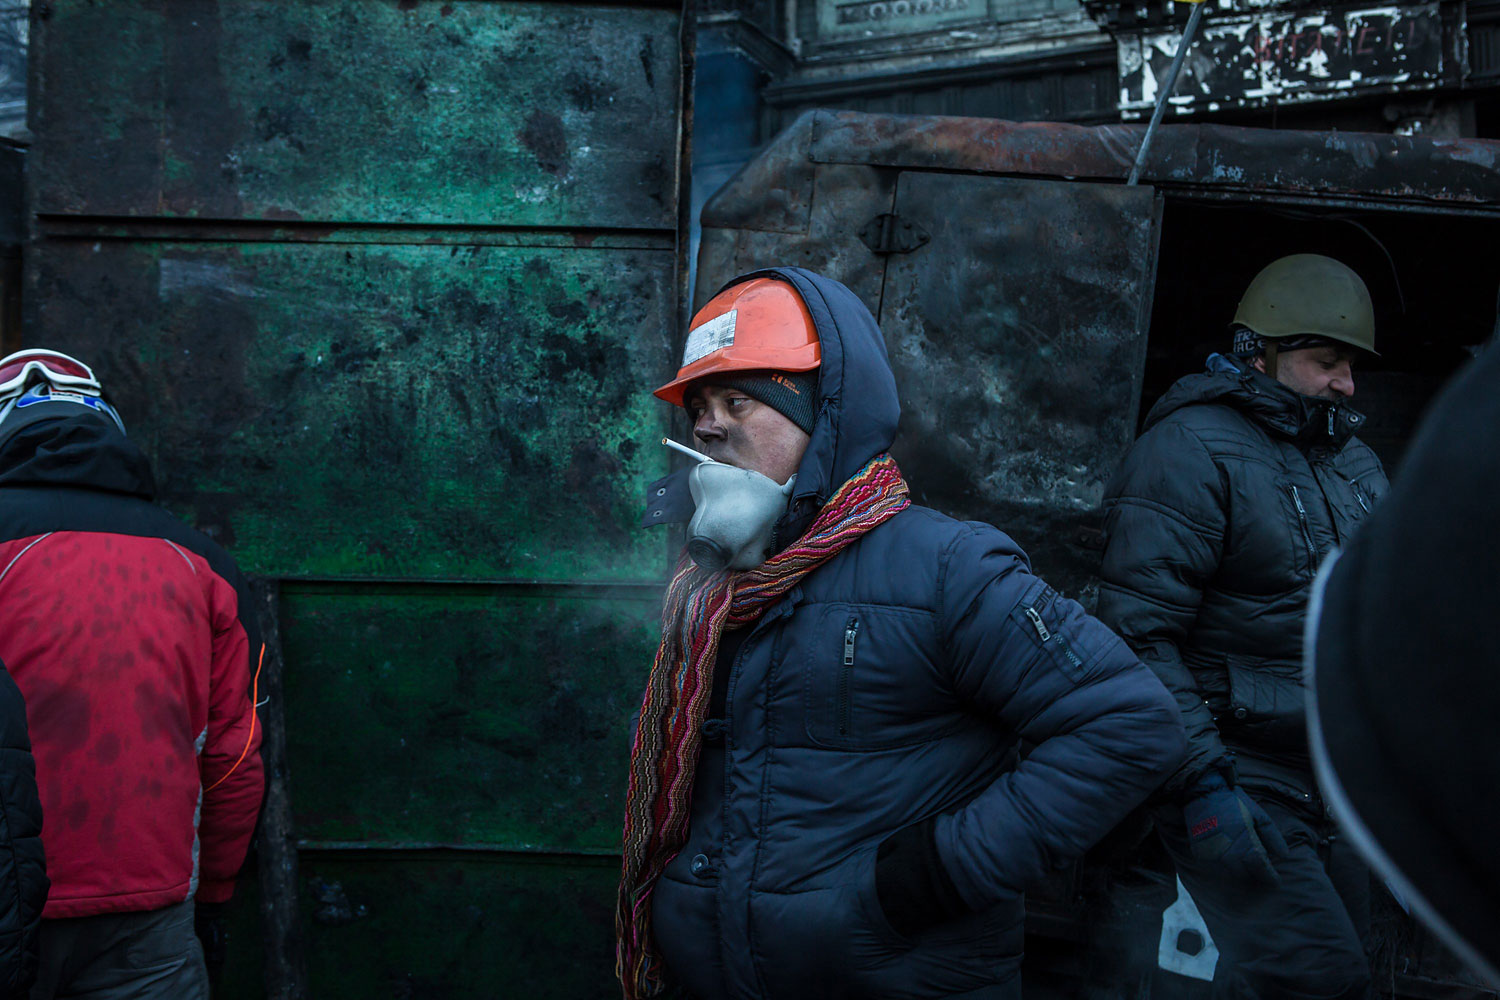 Anti-government protesters guard a barricade on a street near Dynamo stadium on Jan. 24, 2014 in Kiev.